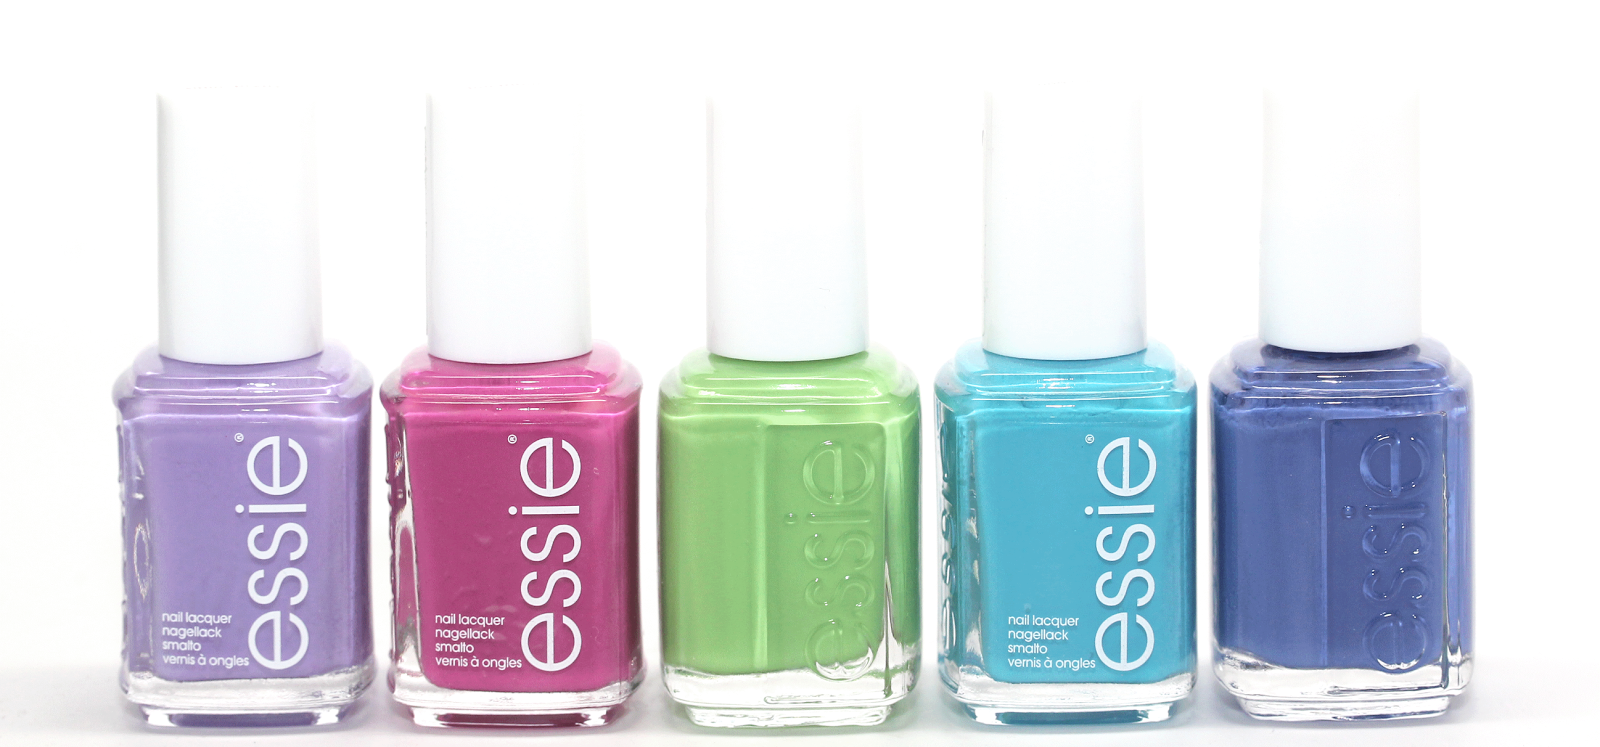 ESSIE NEON COLLECTION: REVIEW, PHOTOS & SWATCHES | Makeup Revolution